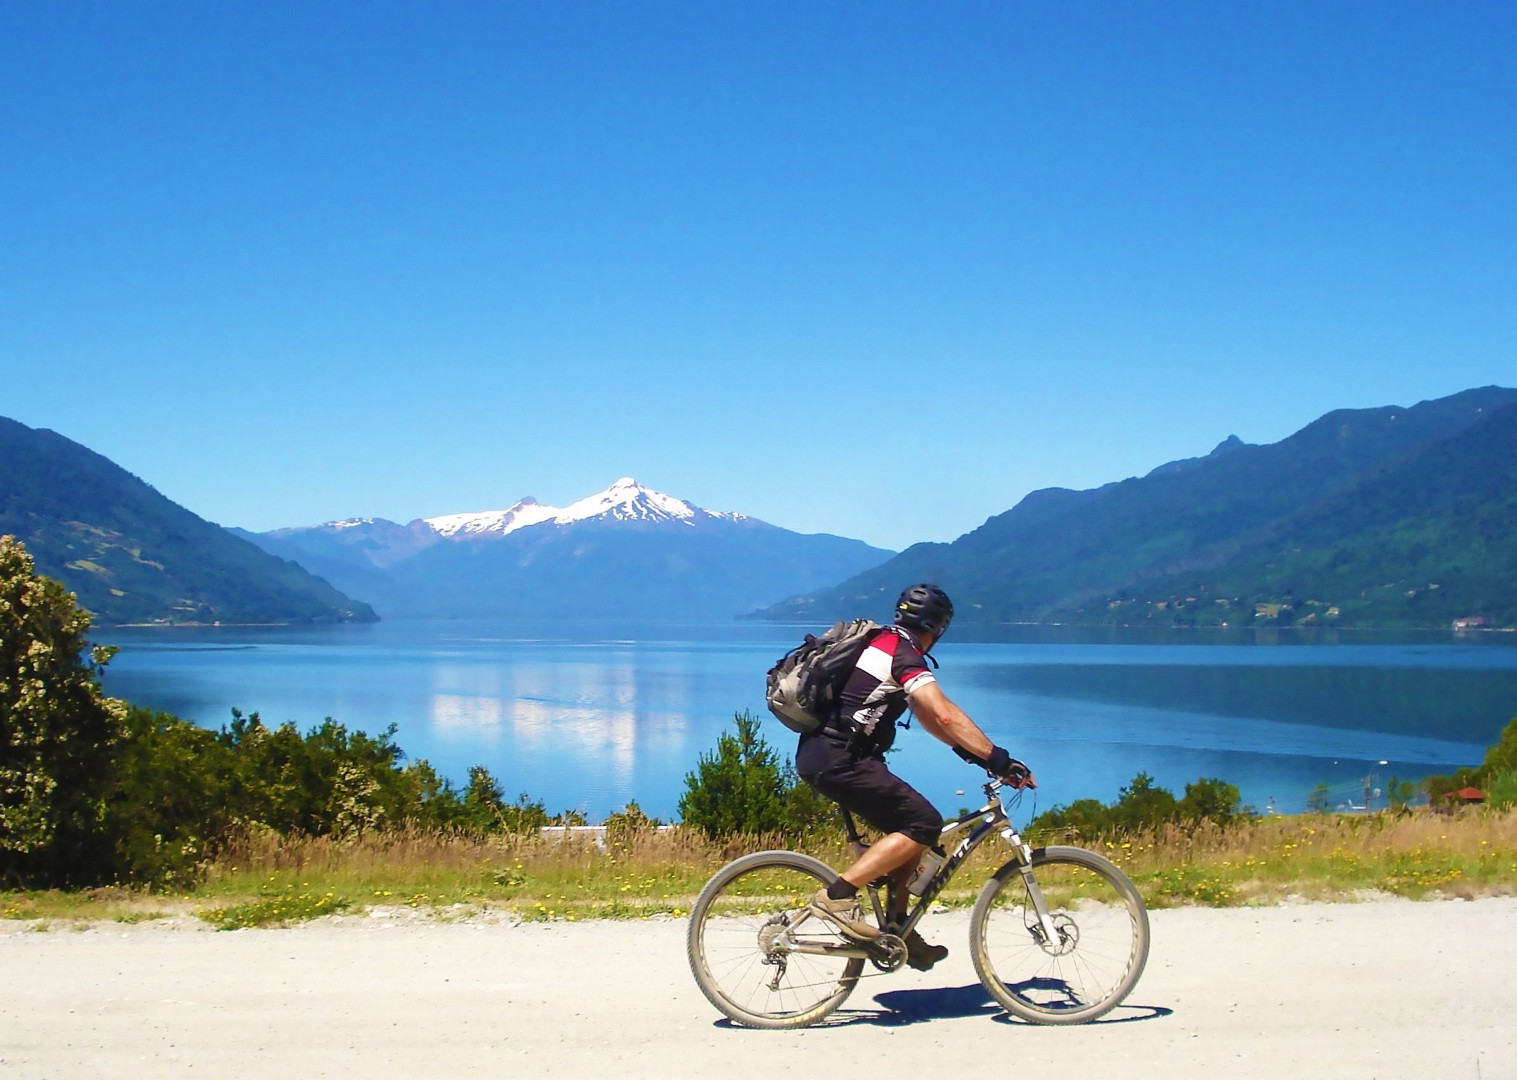 chile-cycling-holiday-volcano-adventure-nature.jpg - Chile and Argentina - Lake District - Cycling Adventures